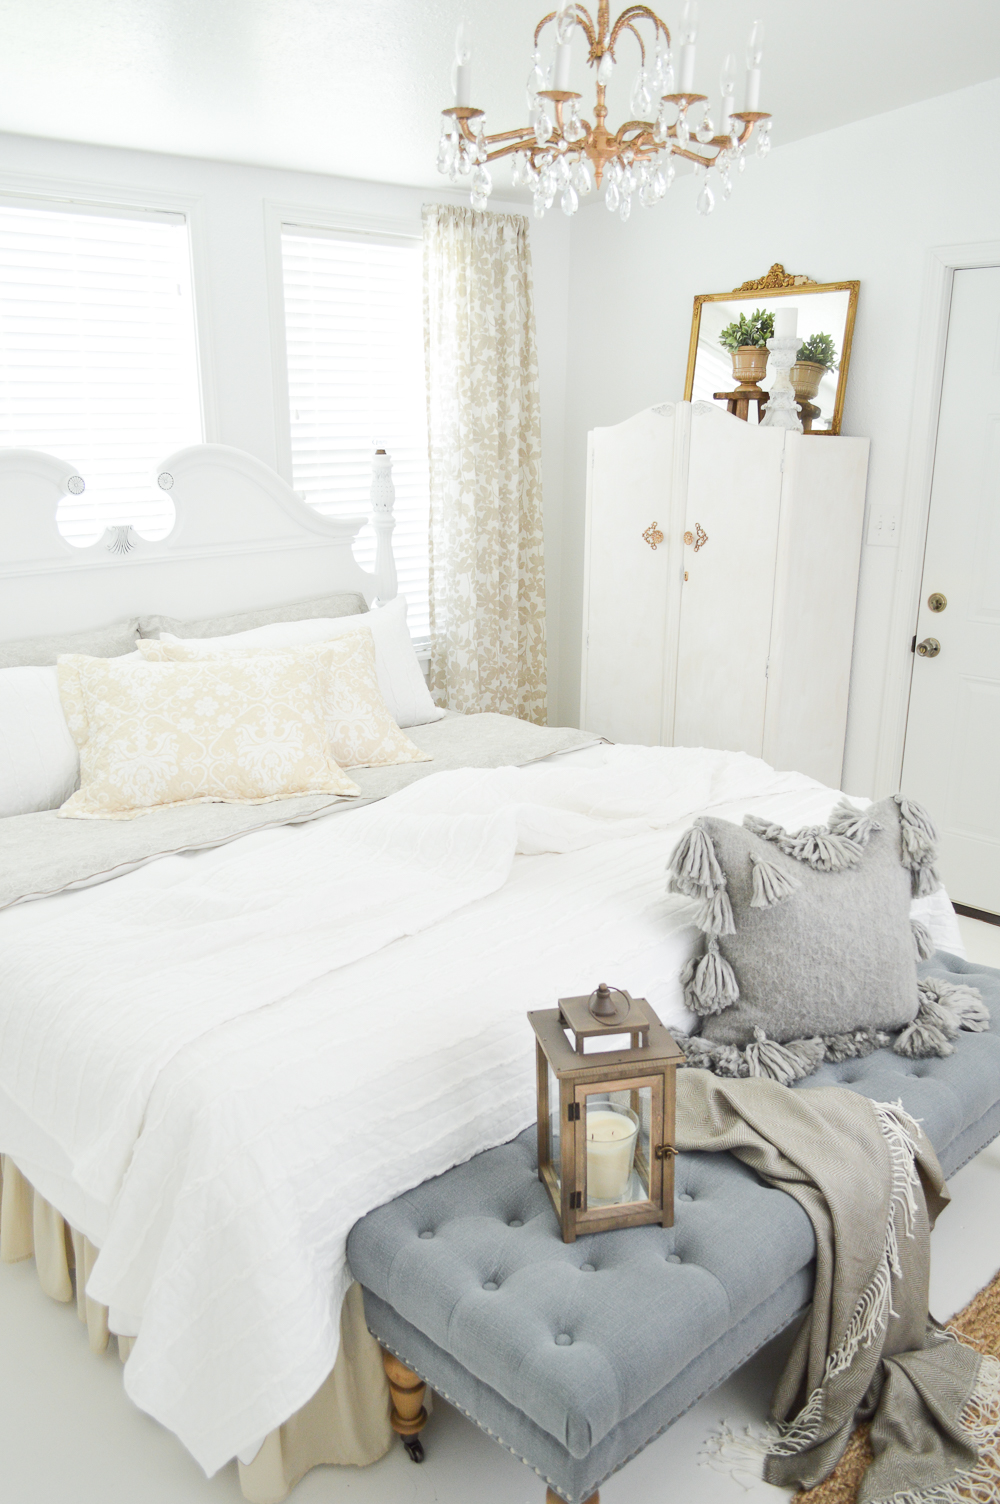 Vintage Cottage Guest Bedroom Makeover - Budget, thrift store, garage sale and clearance finds fill this DIY guest bedroom